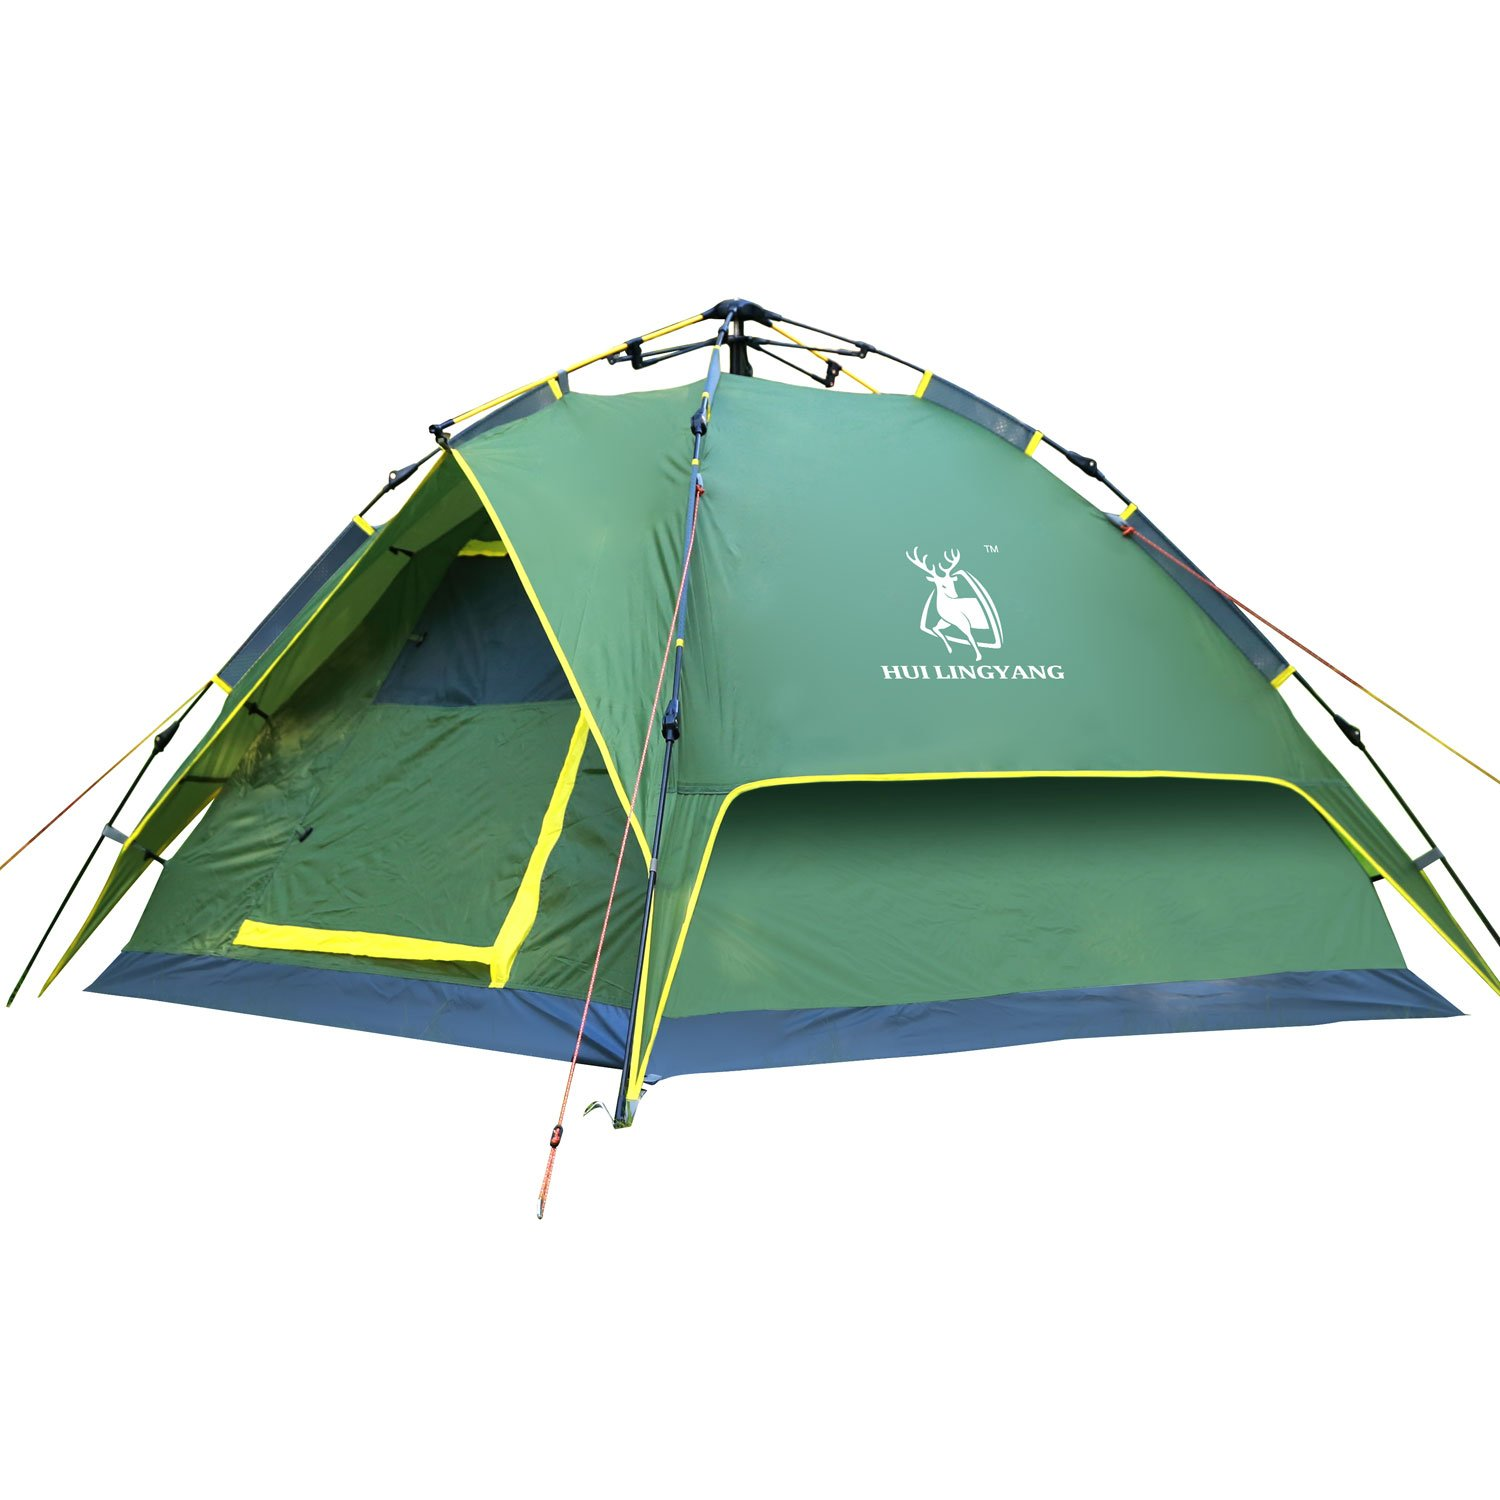 HUI LINGYANG Outdoor Four Person Easy Pop Up Camping Tent - Automatic Setup -Ideal Shelter for Casual Family Camping Hiking, Amy Green